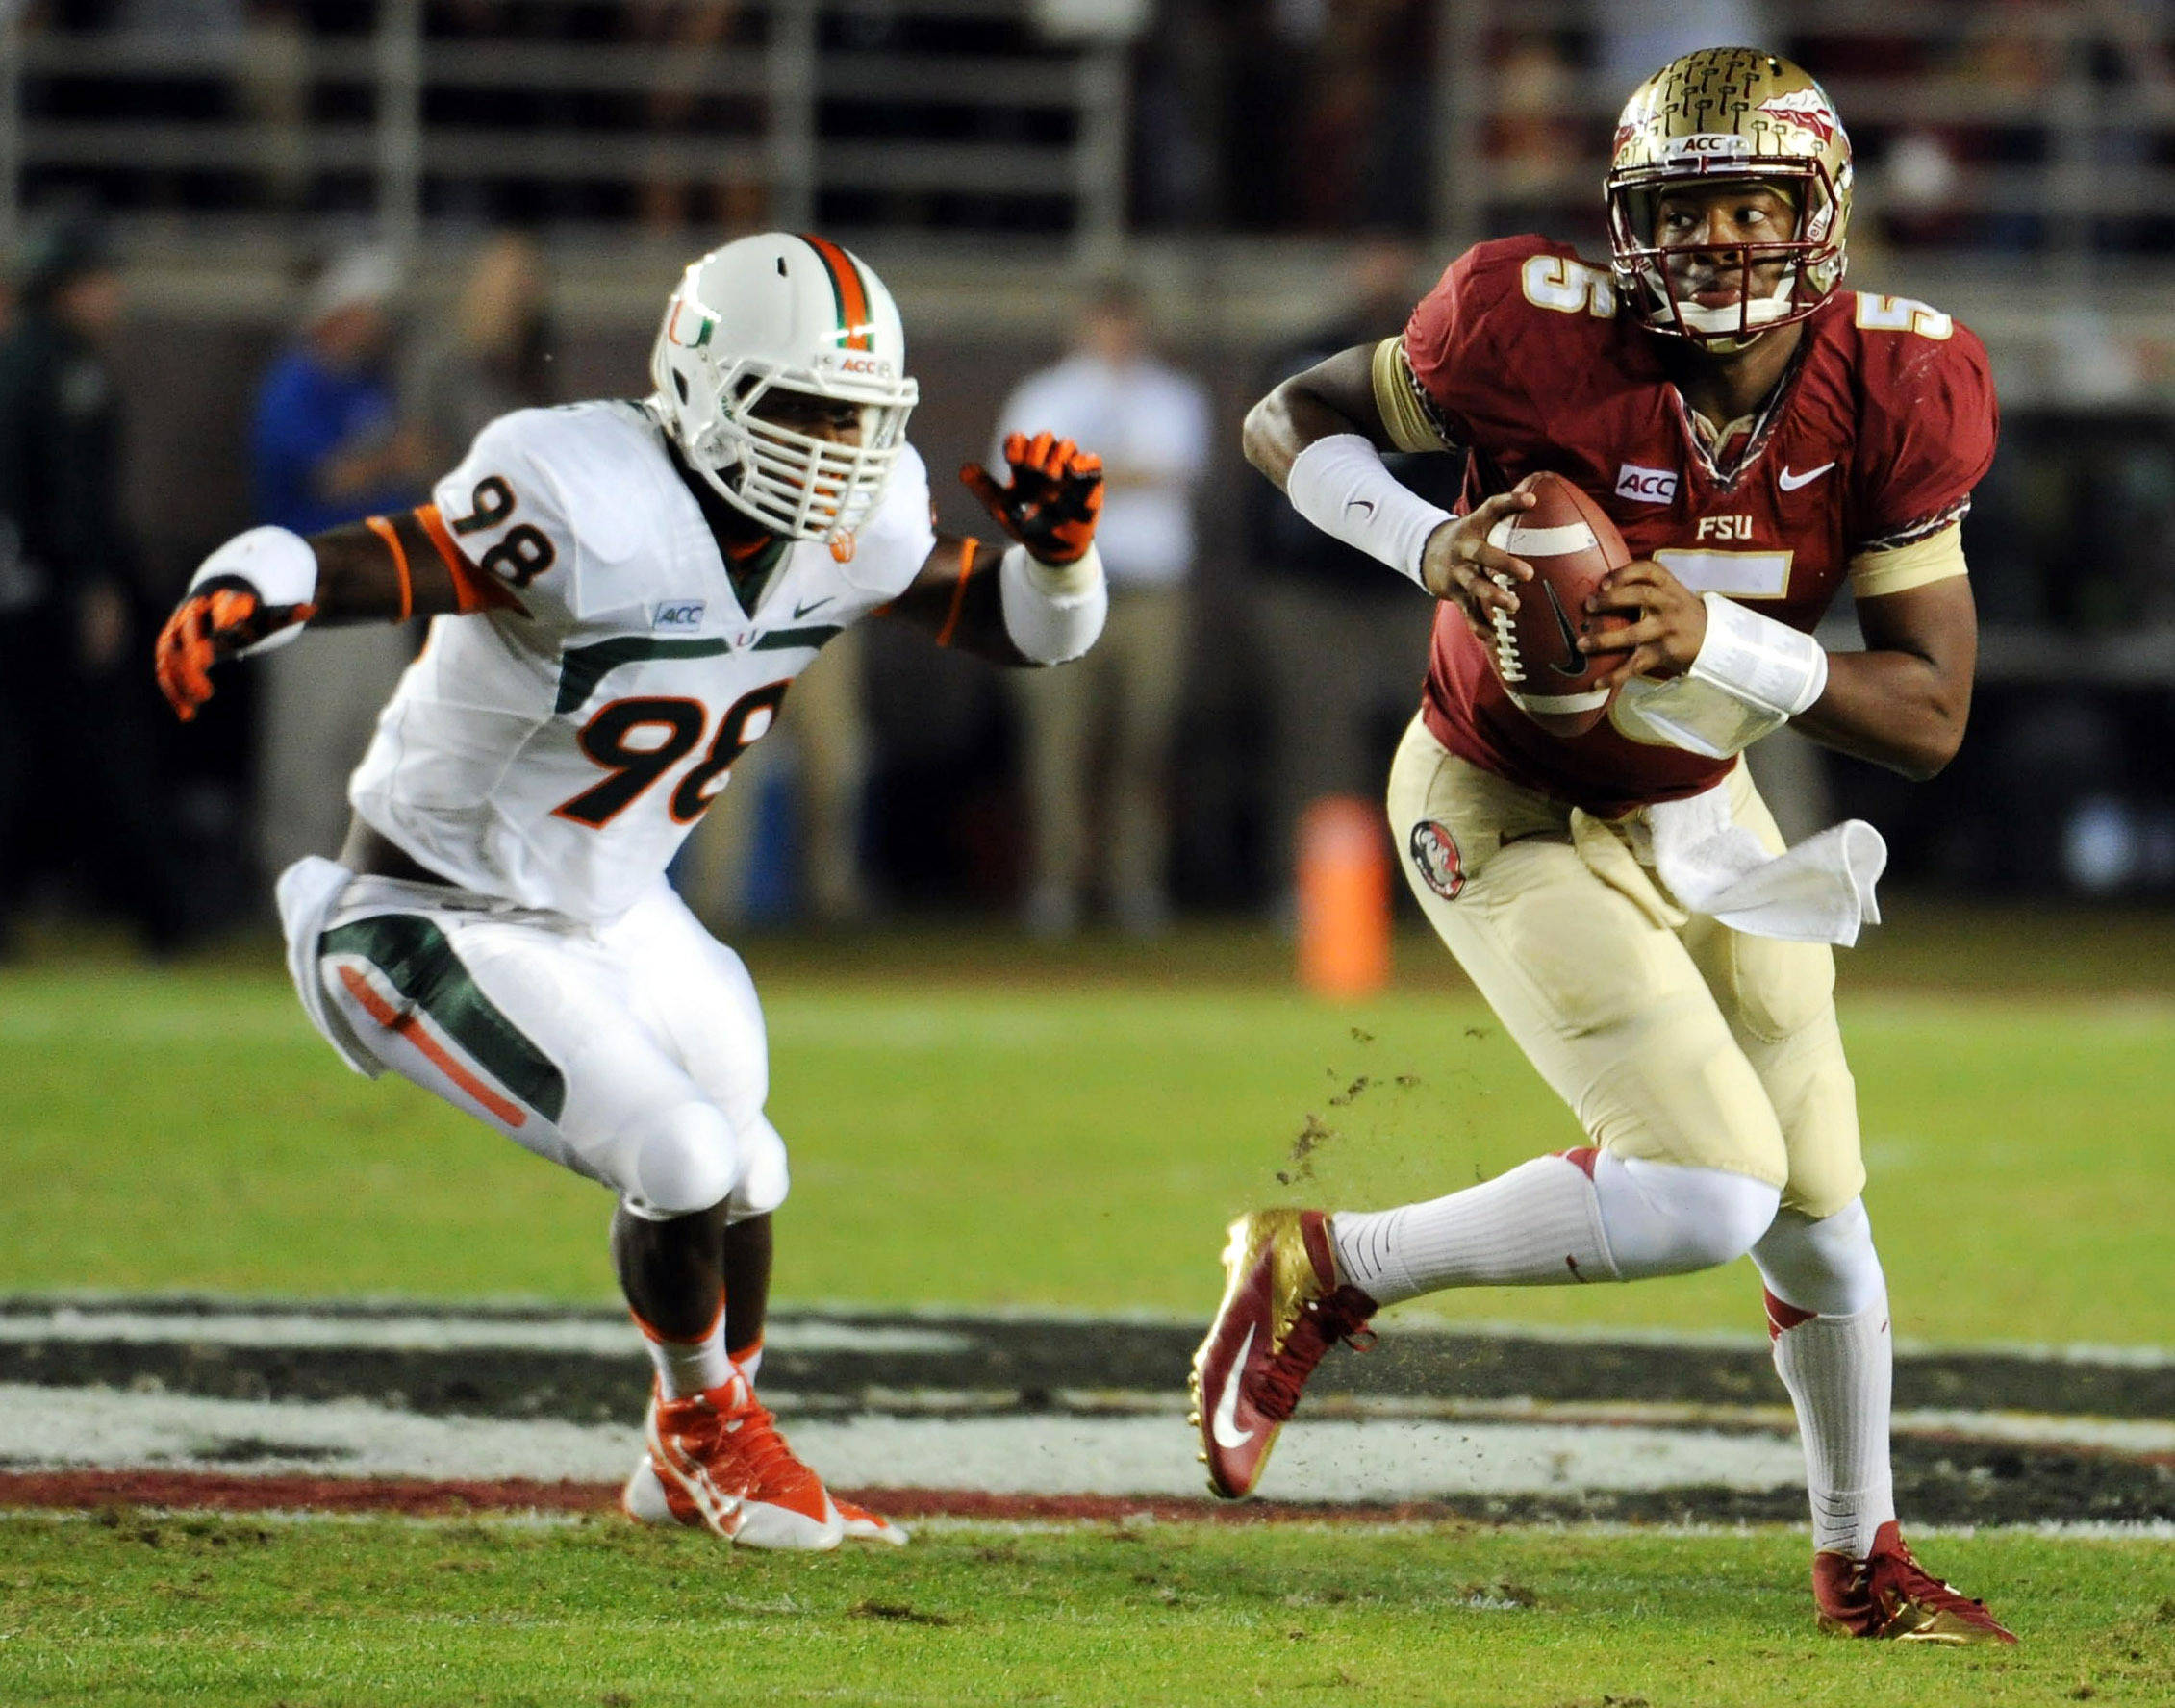 Florida State Seminoles quarterback Jameis Winston (5) runs the ball past Miami Hurricanes defensive end Al-Quadin Muhammad (98) during the game at Doak Campbell Stadium. Mandatory Credit: Melina Vastola-USA TODAY Sports